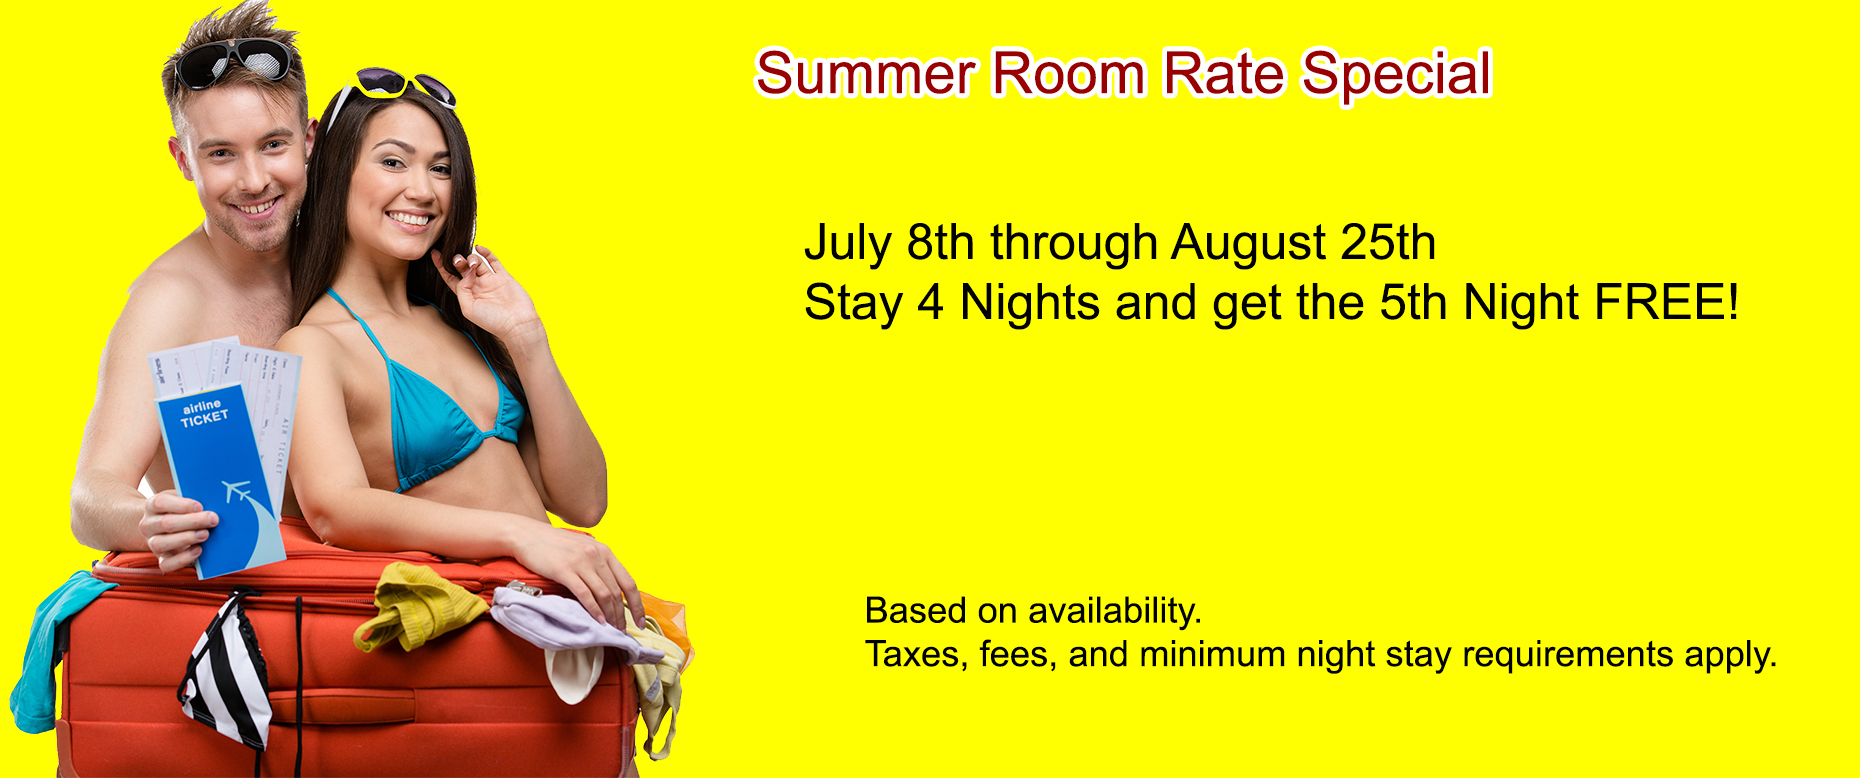 Summer Room Rate Special